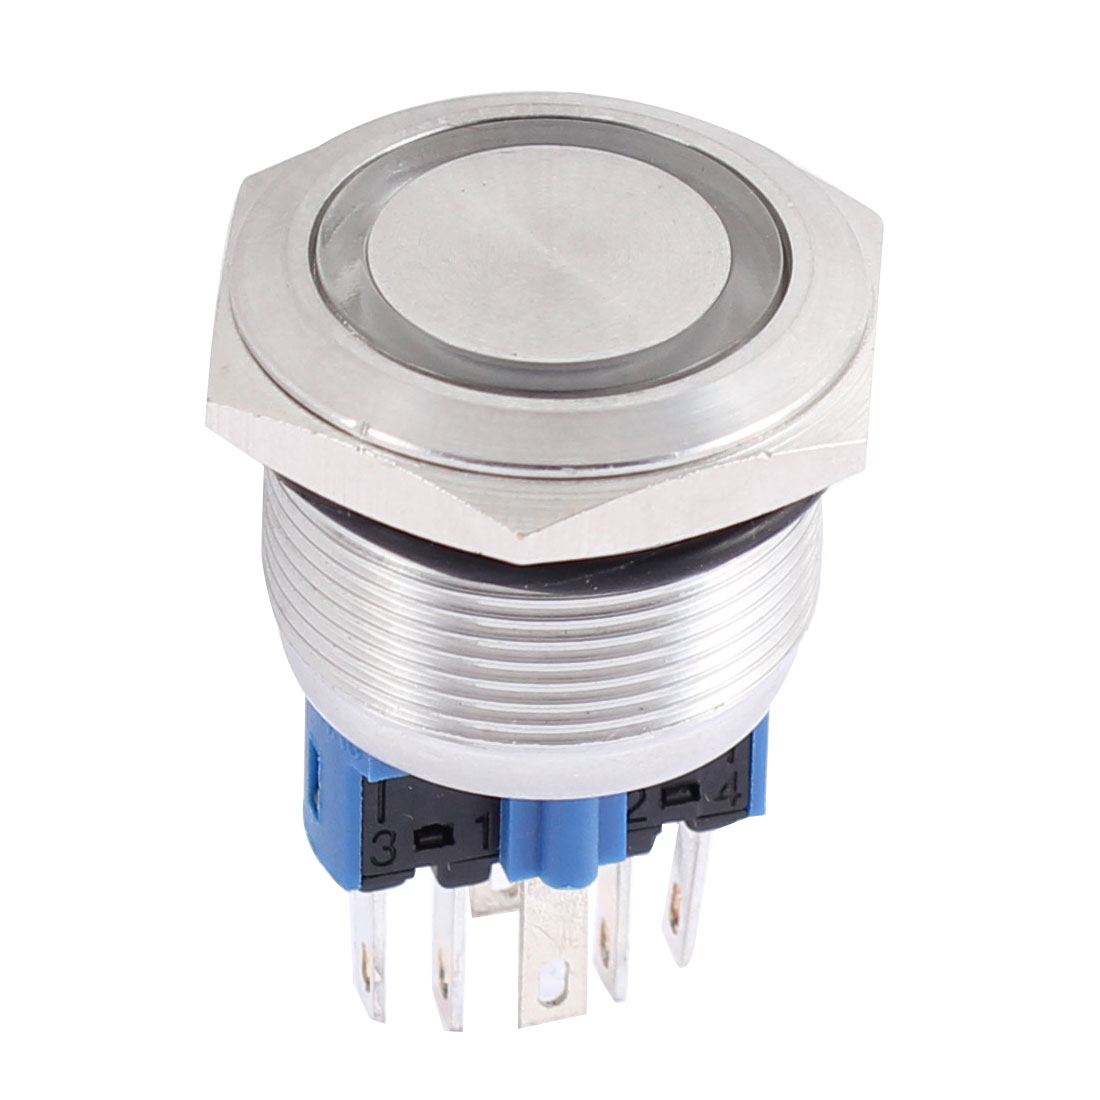 DC12V Yellow LED Angel Eye Shape Cap DPST 6 Terminal Flat Momentary Metal Push Button Switch 22mm Dia